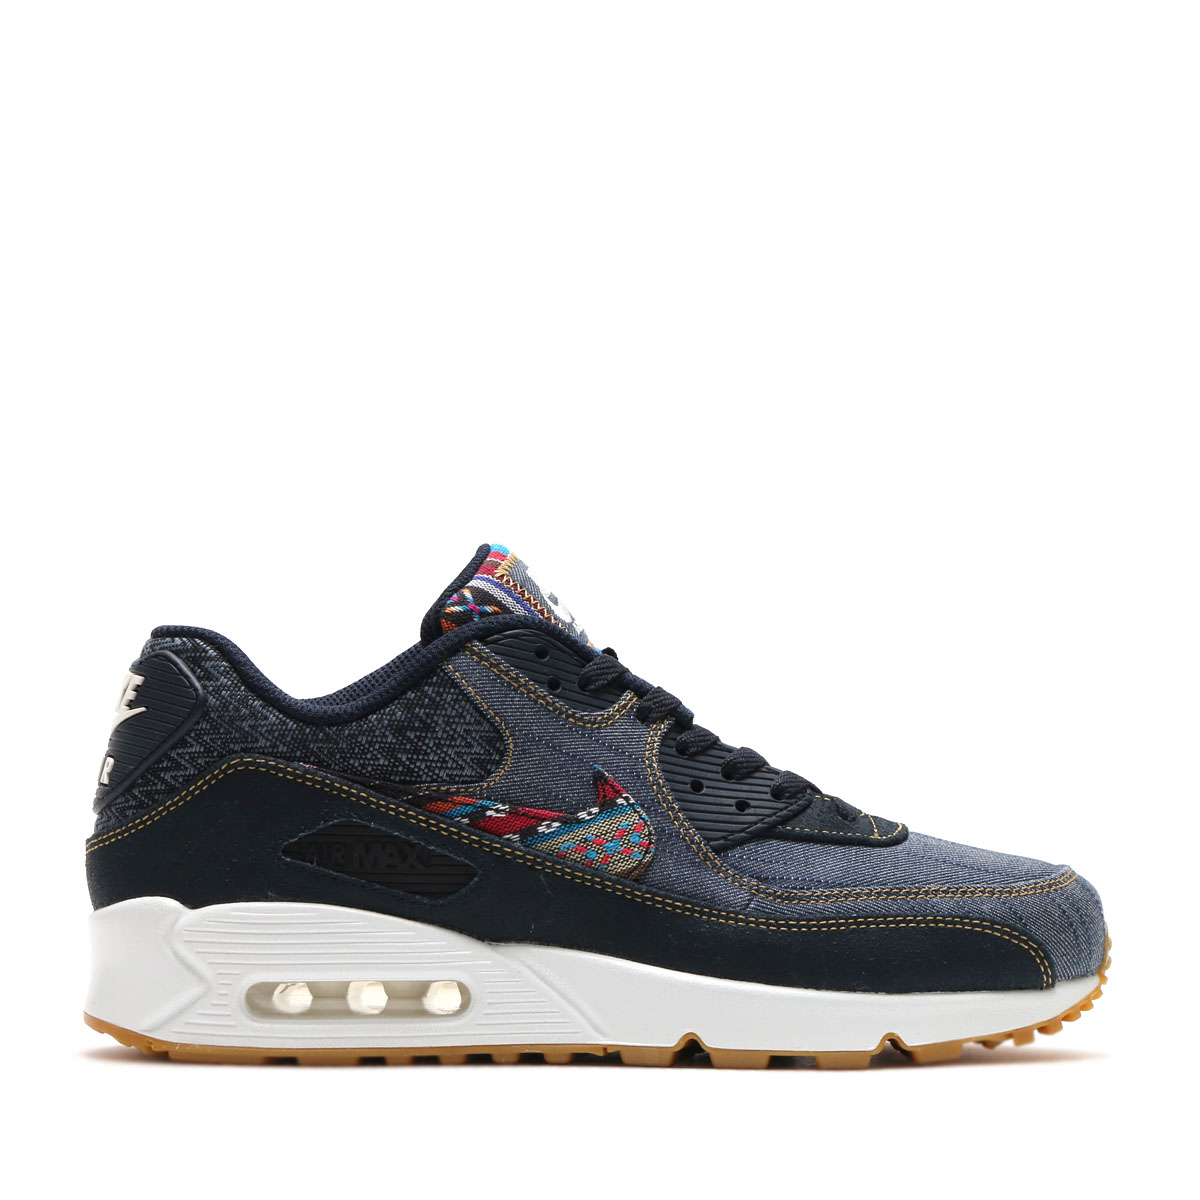 half off 41252 98cab nike air max 90 south black obsidian white